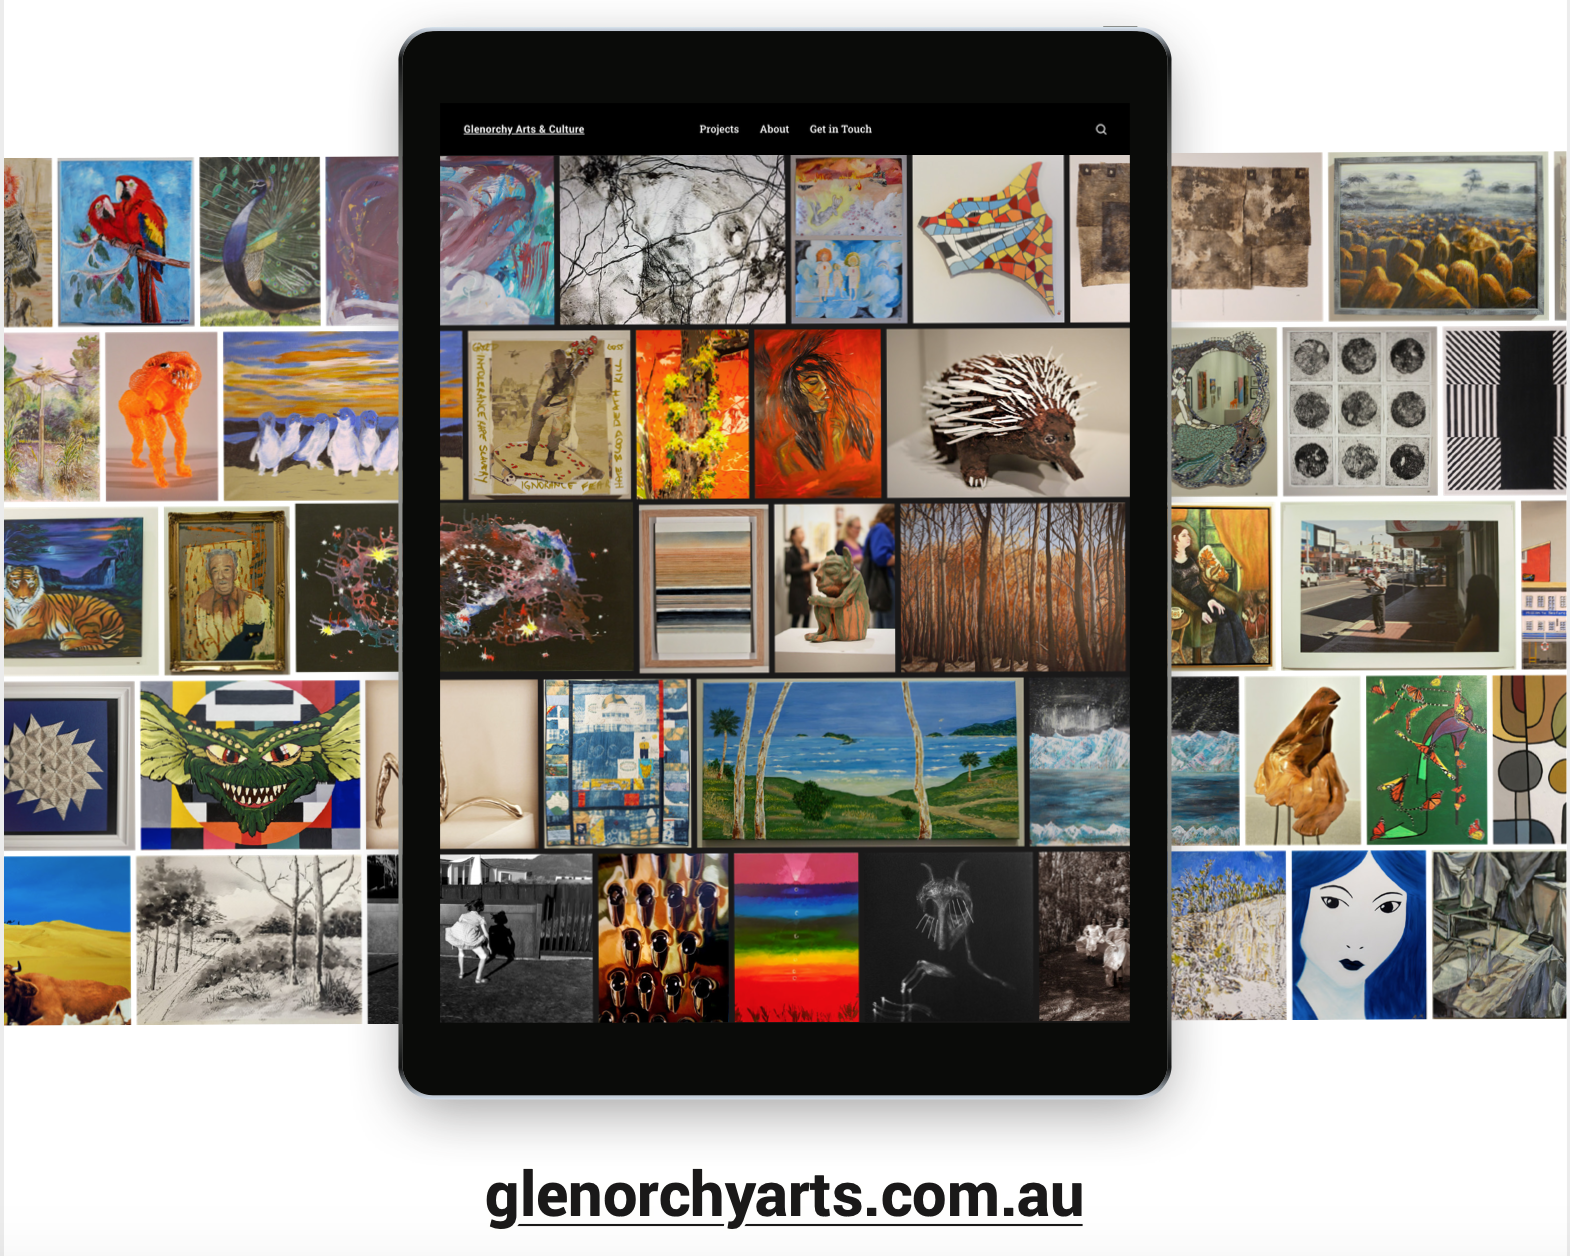 Artworks displayed on a mobile device